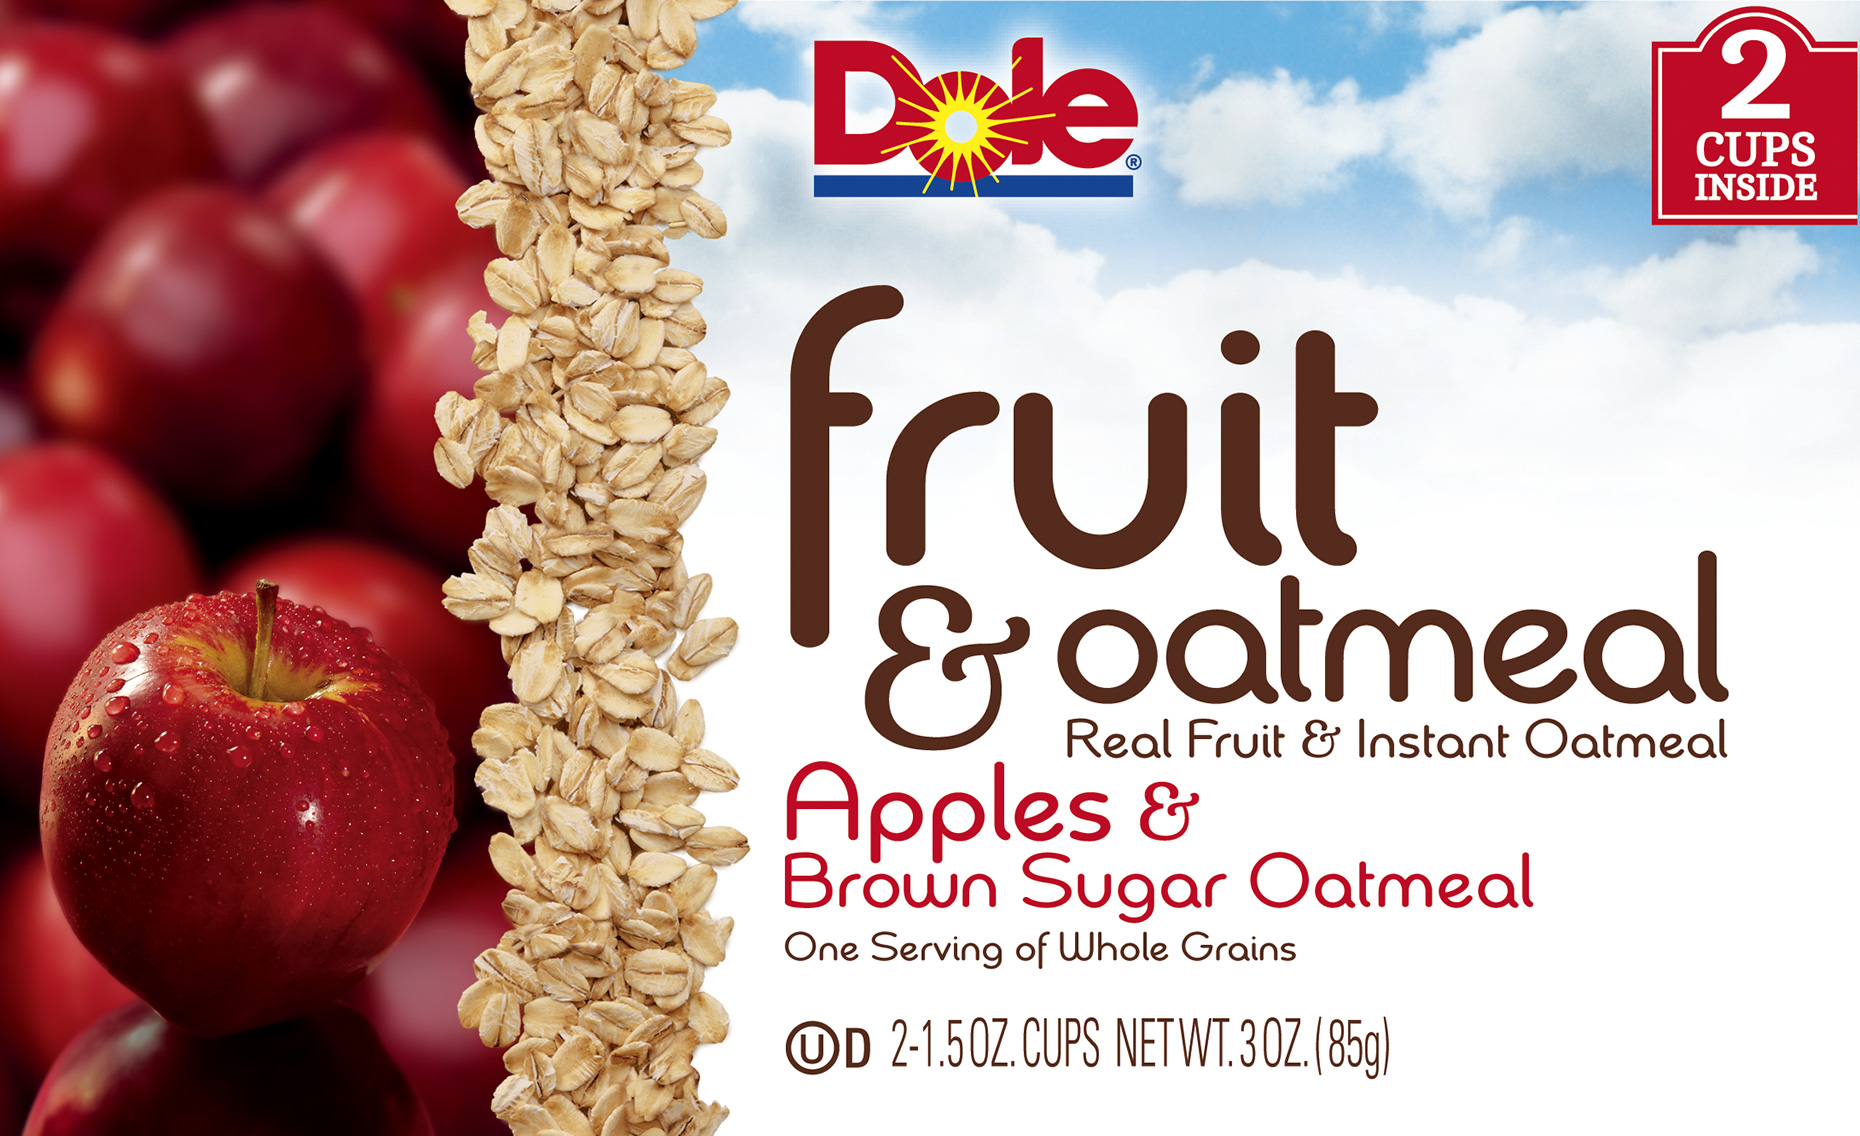 5498-Dole-Quaker-Photomask---Apple-whole